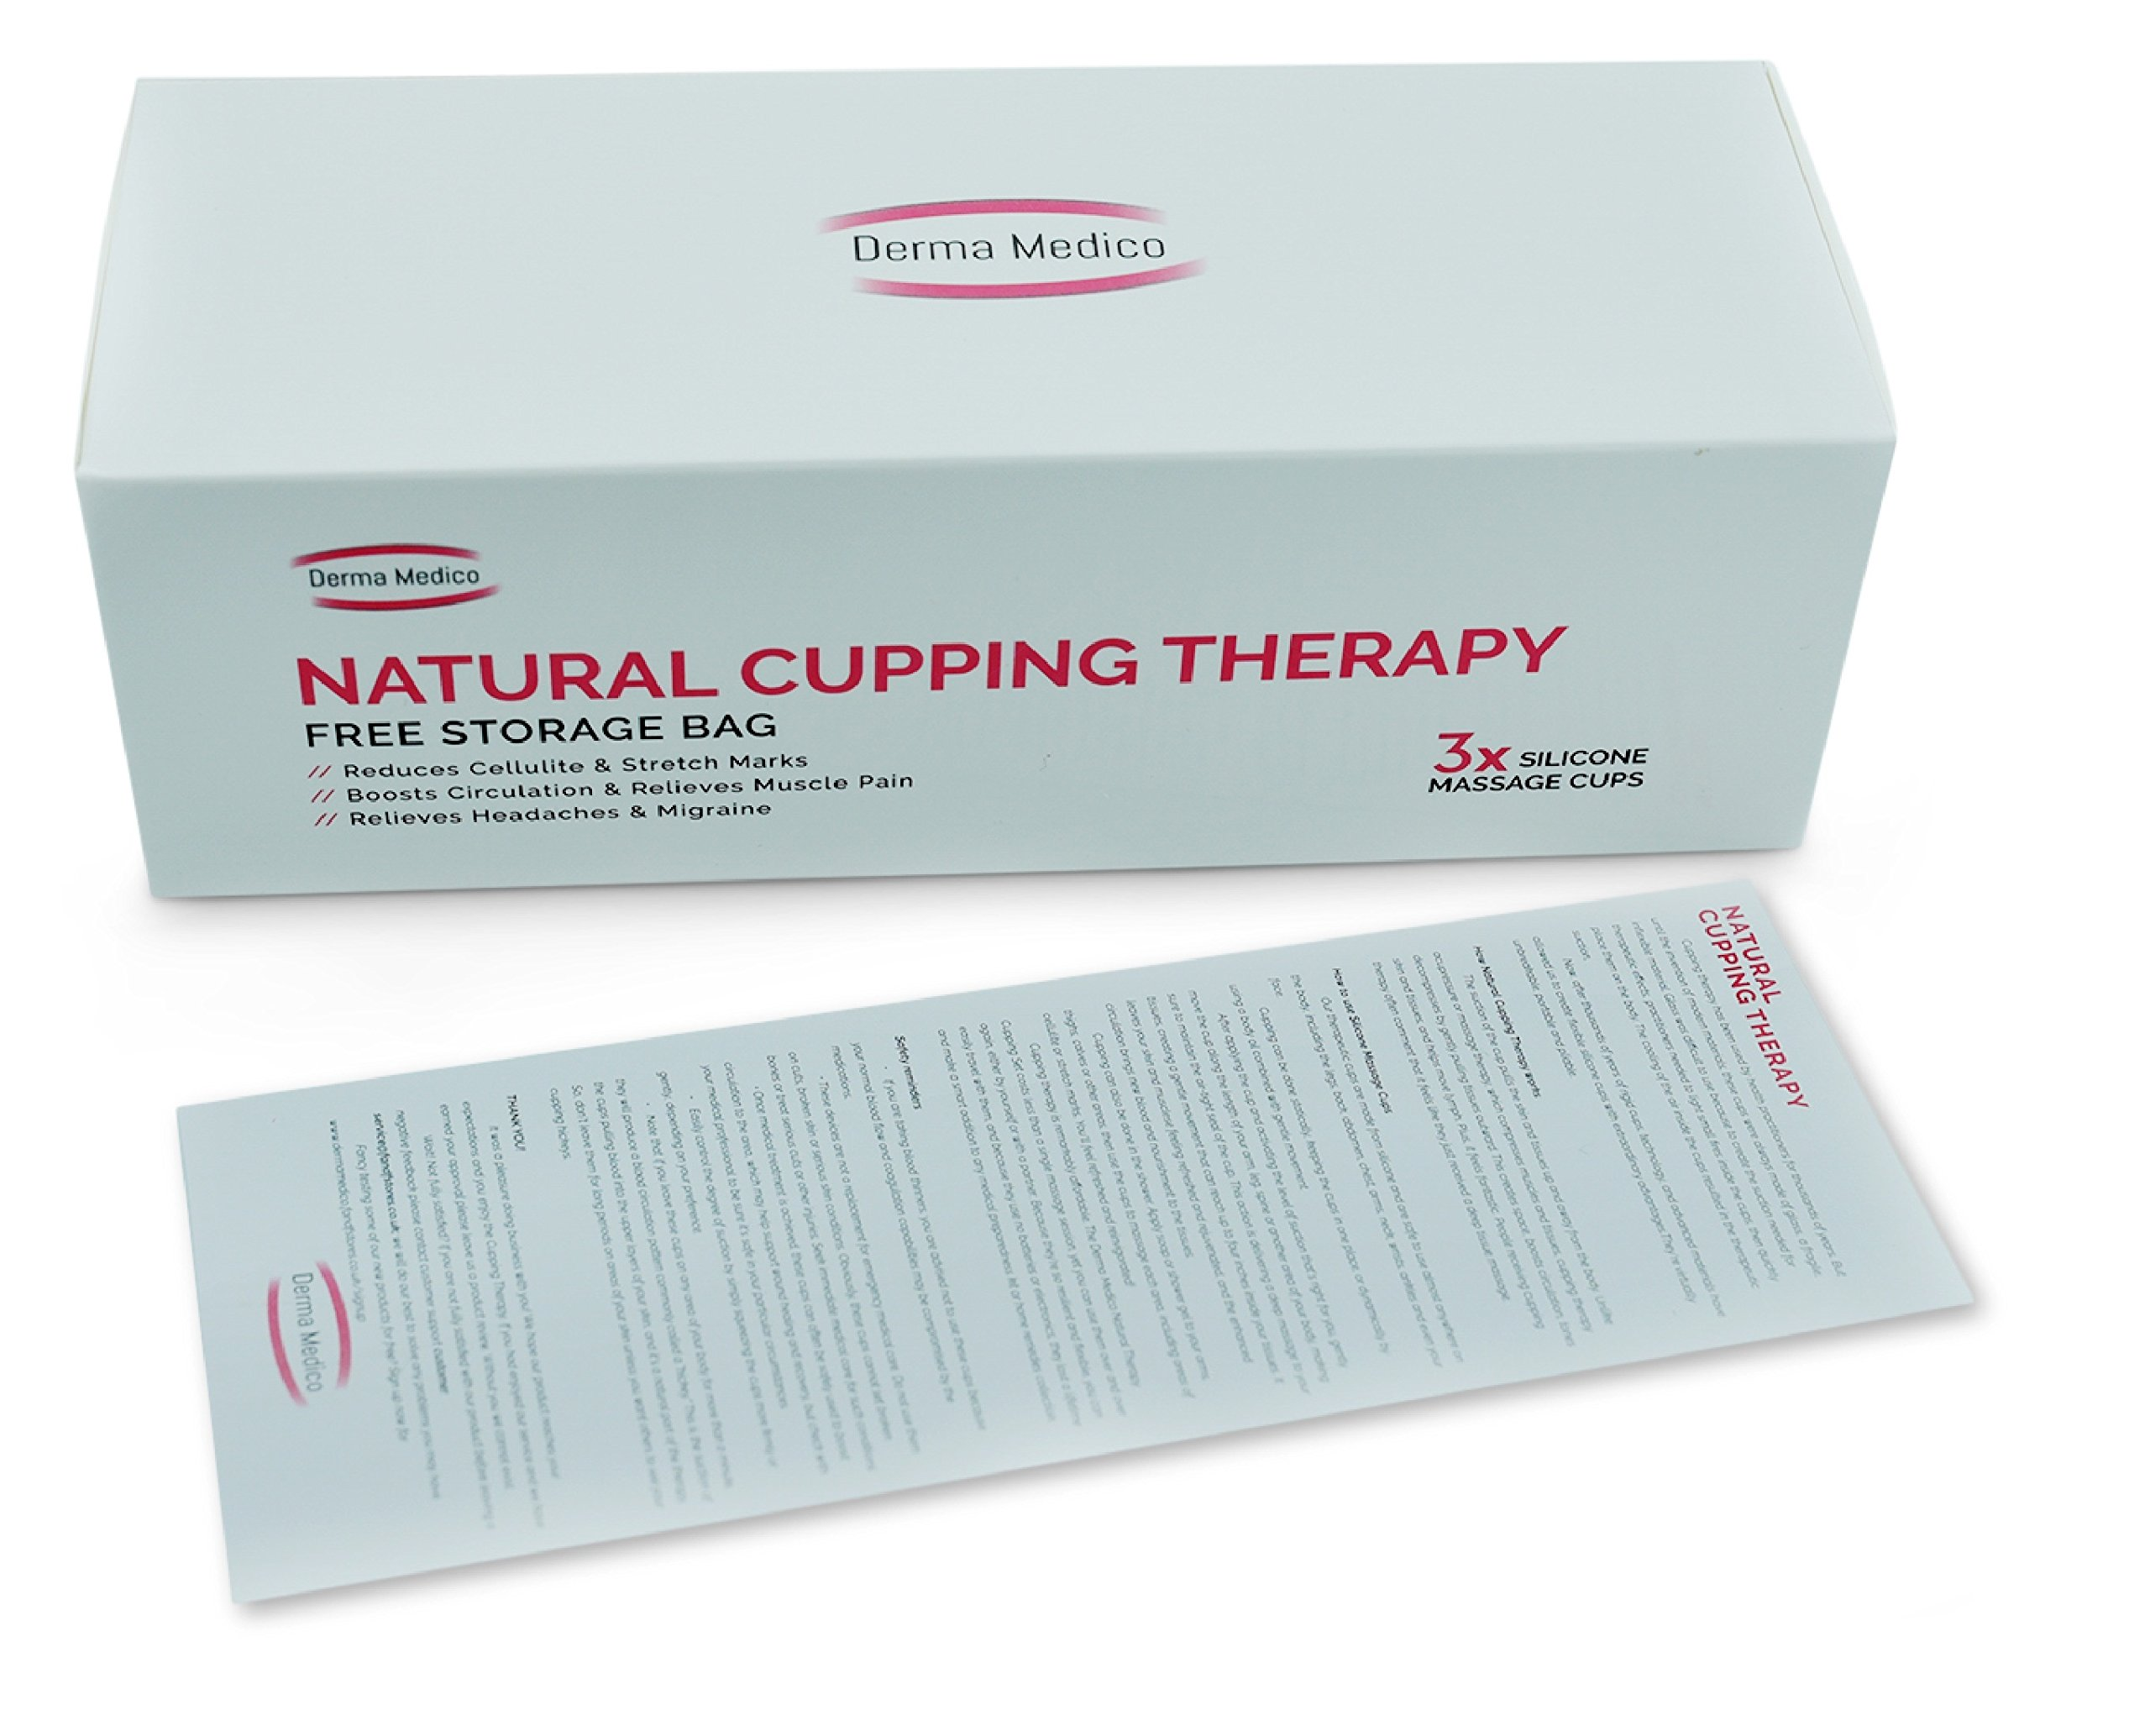 Derma Medico Silicone Body Massage Cups - Natural Cupping Therapy – Gift Box of 3 Vacuum Cups with FREE Storage Bag – Reduces Cellulite and Stretch Marks, For Relaxation and Relieves Stress